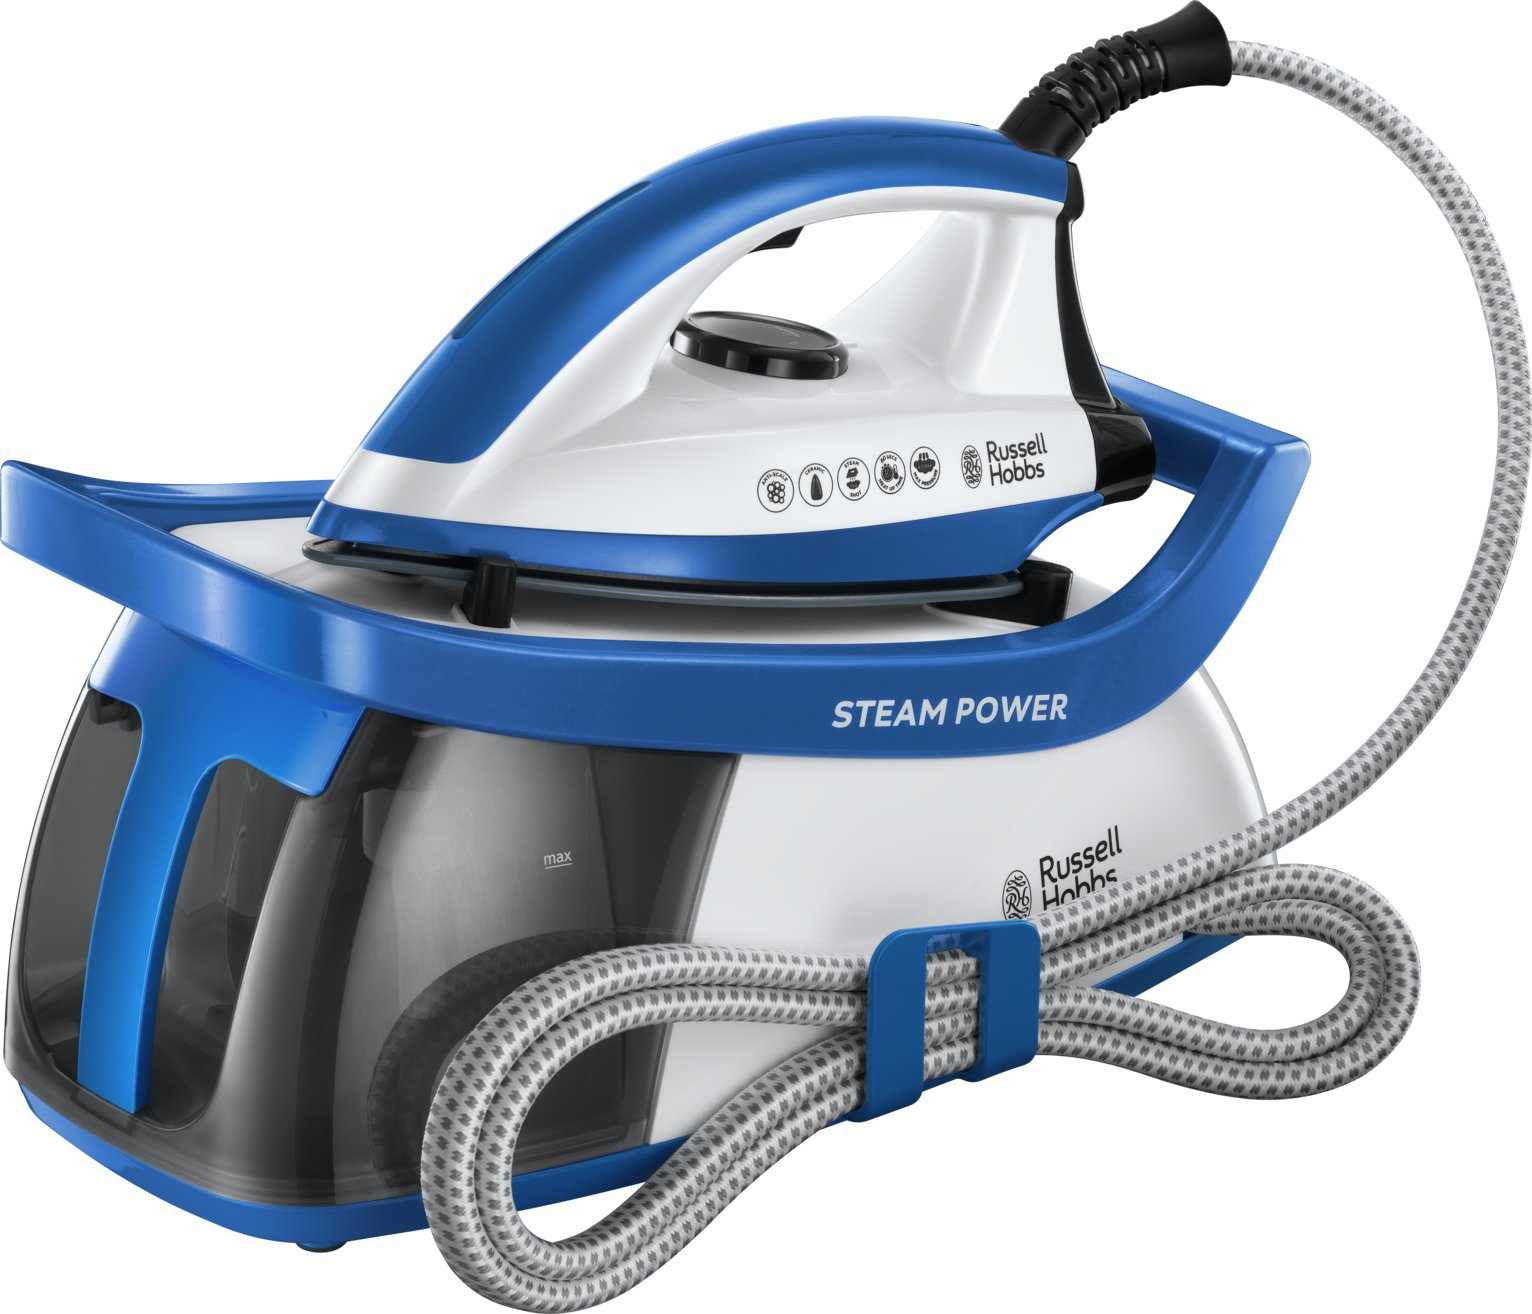 Russell Hobbs Steam Power Steam Generator